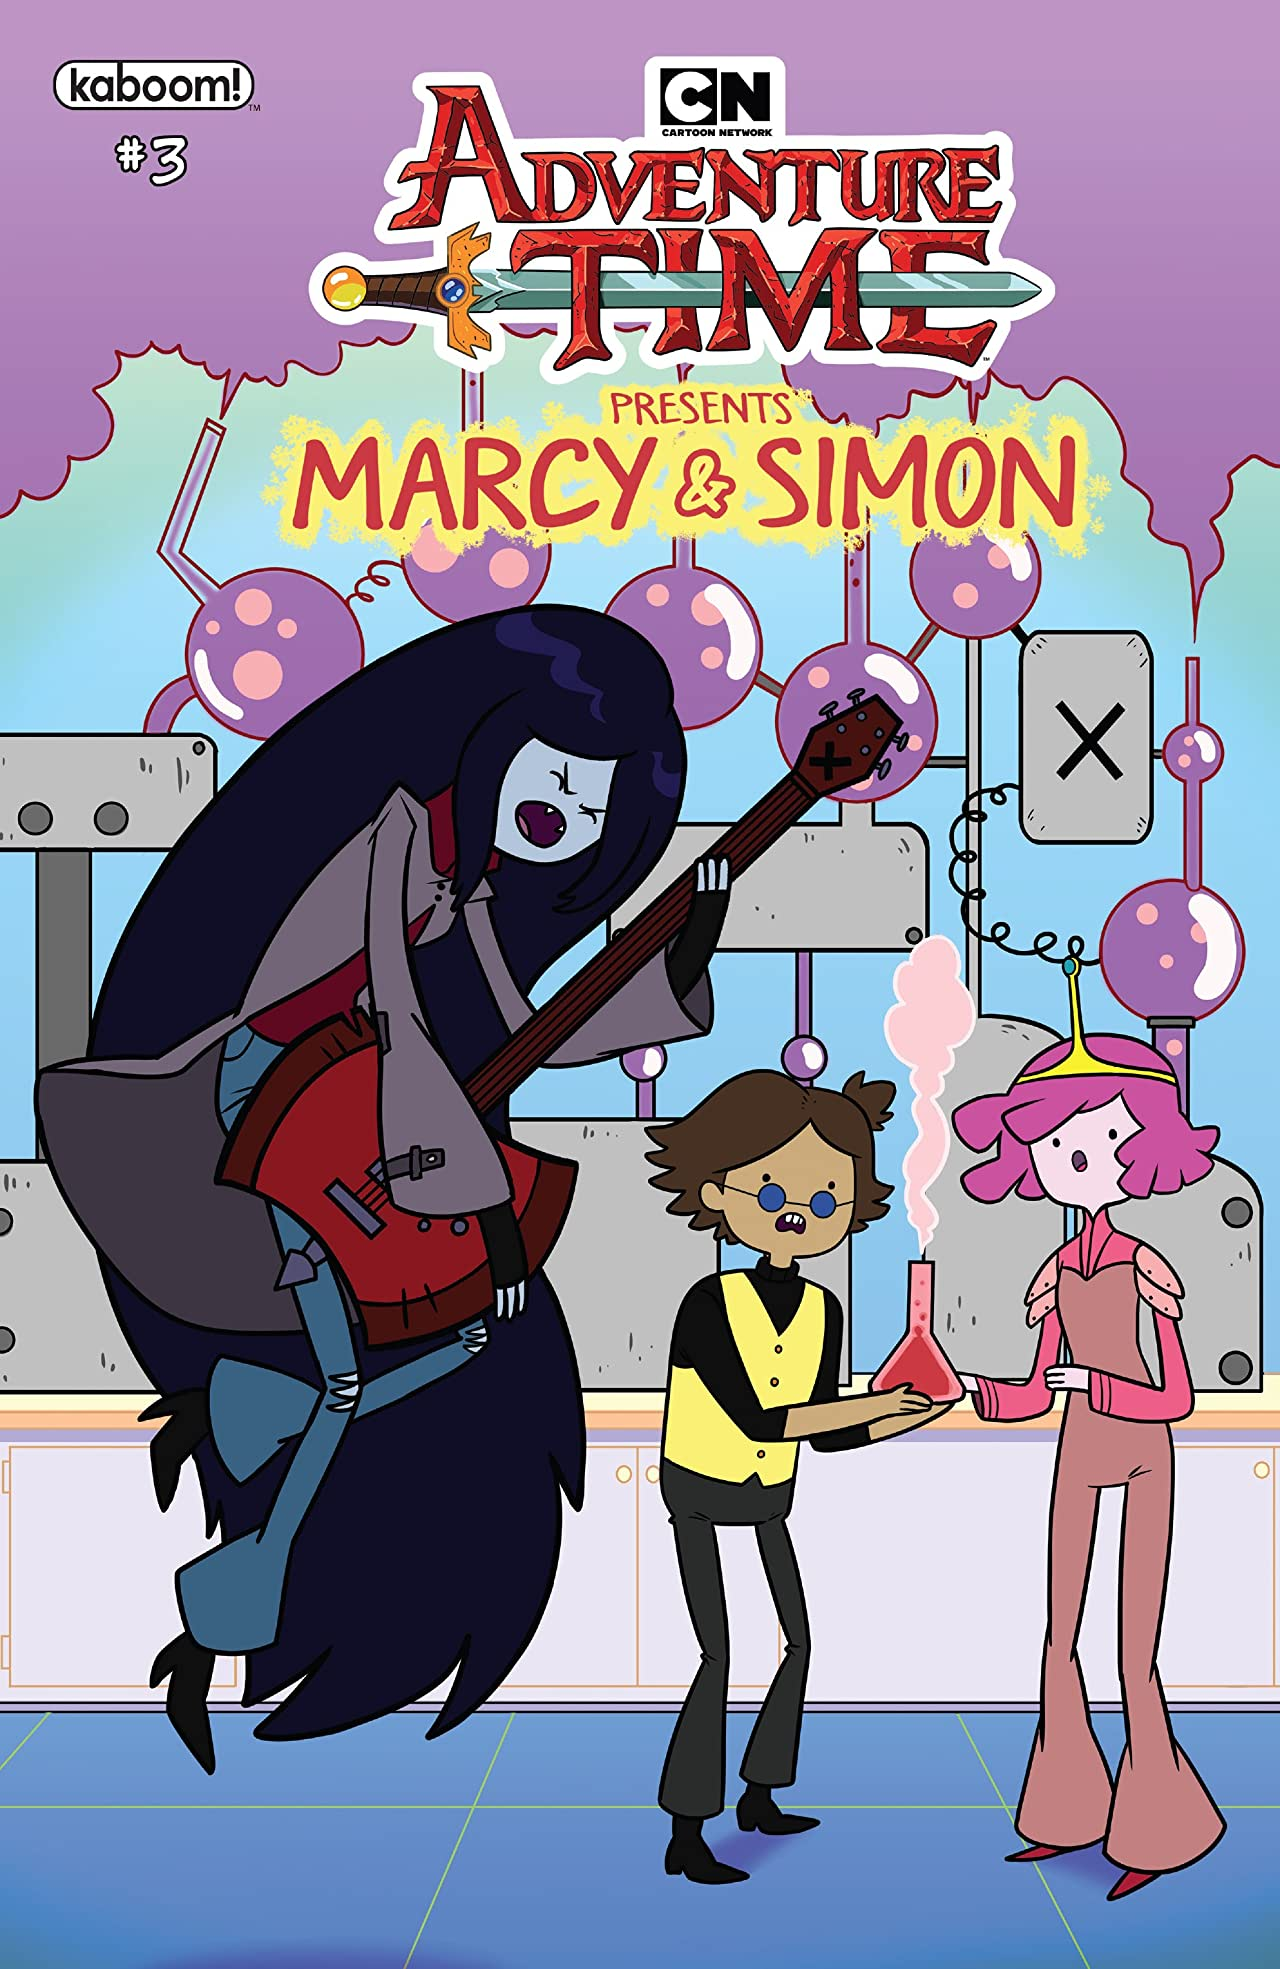 Adventure Time: Marcy & Simon #3